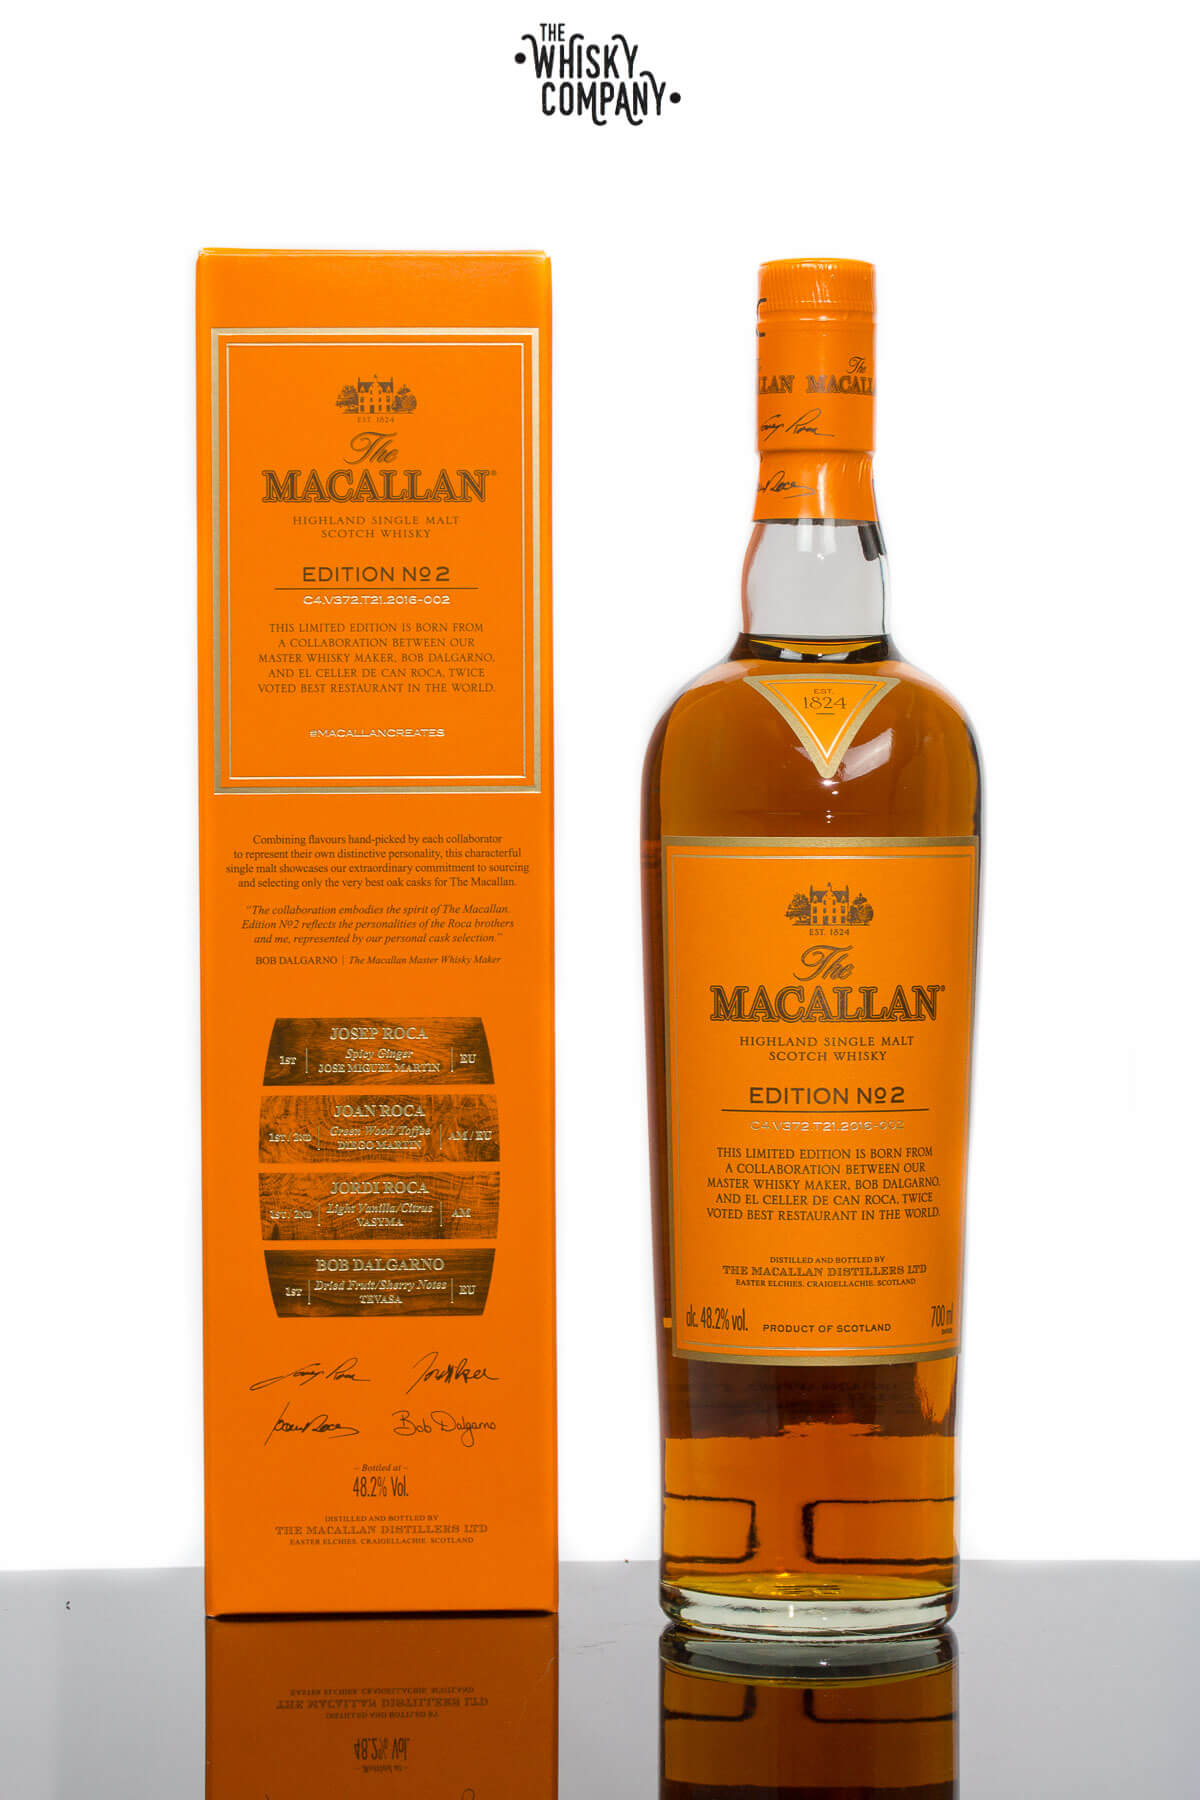 The Macallan Edition 2 Highland Single Malt Scotch Whisky (700ml)